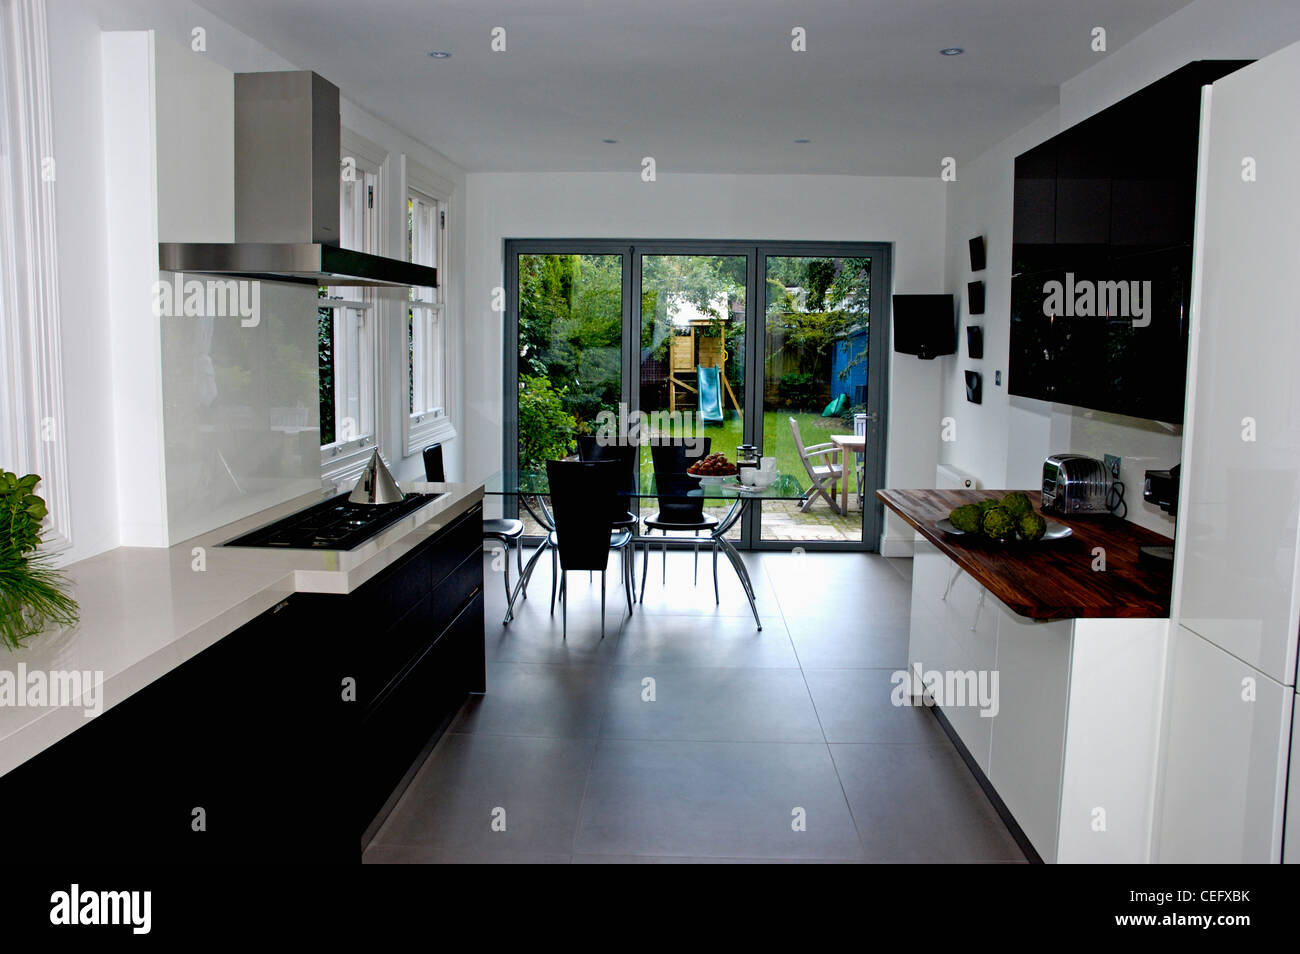 Modern White Kitchen Dining Room With Black Flooring And Glass Patio Doors To The Garden